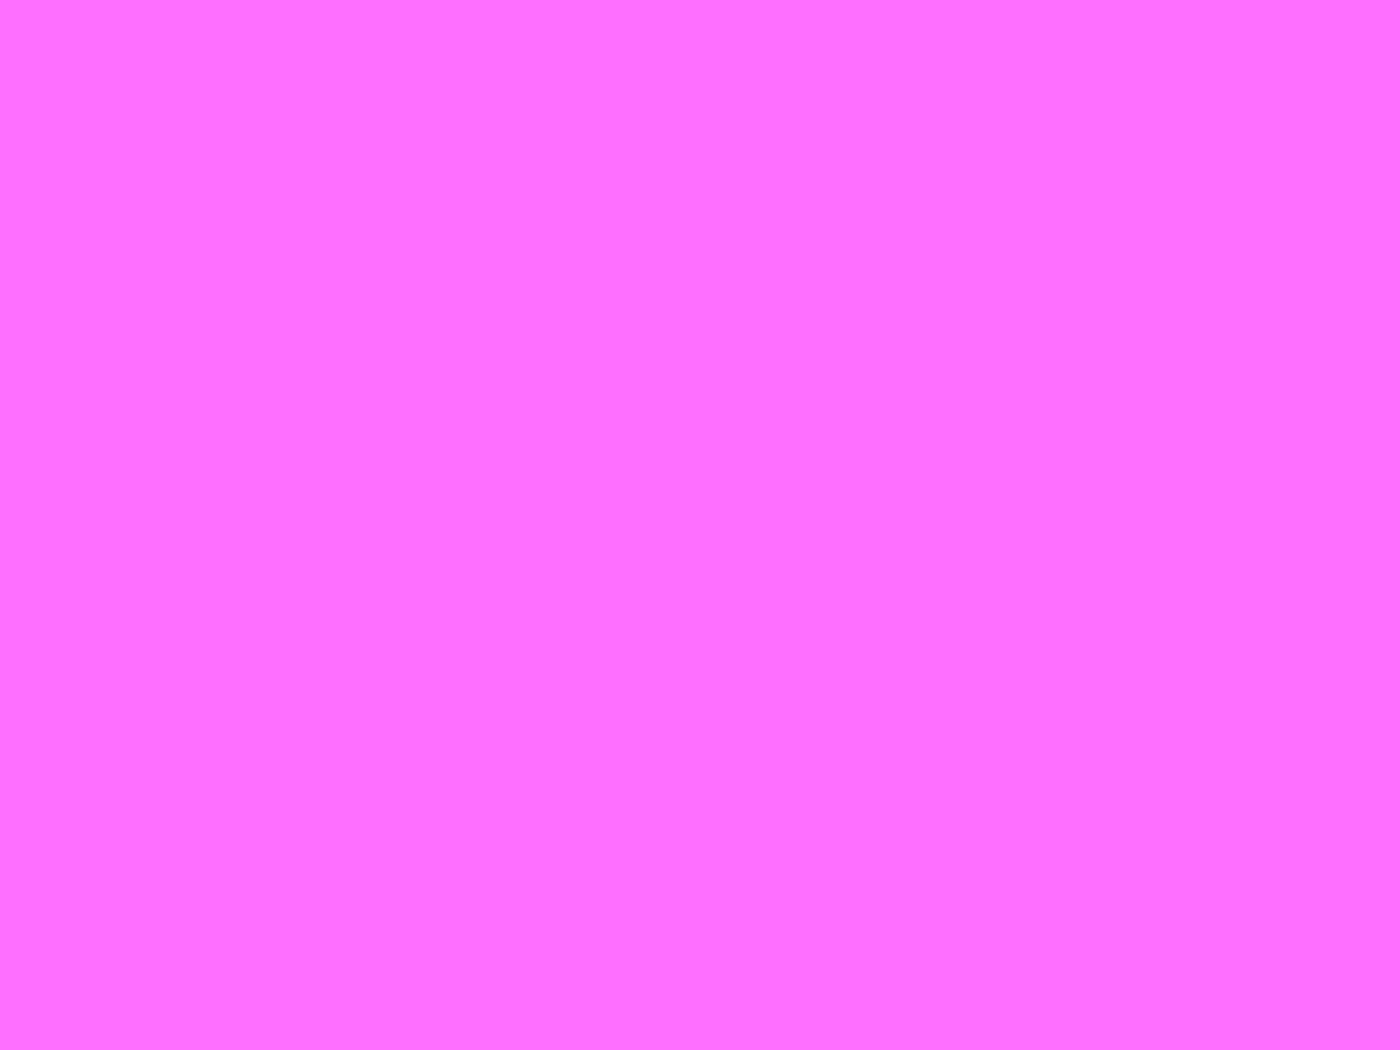 1400x1050 Ultra Pink Solid Color Background